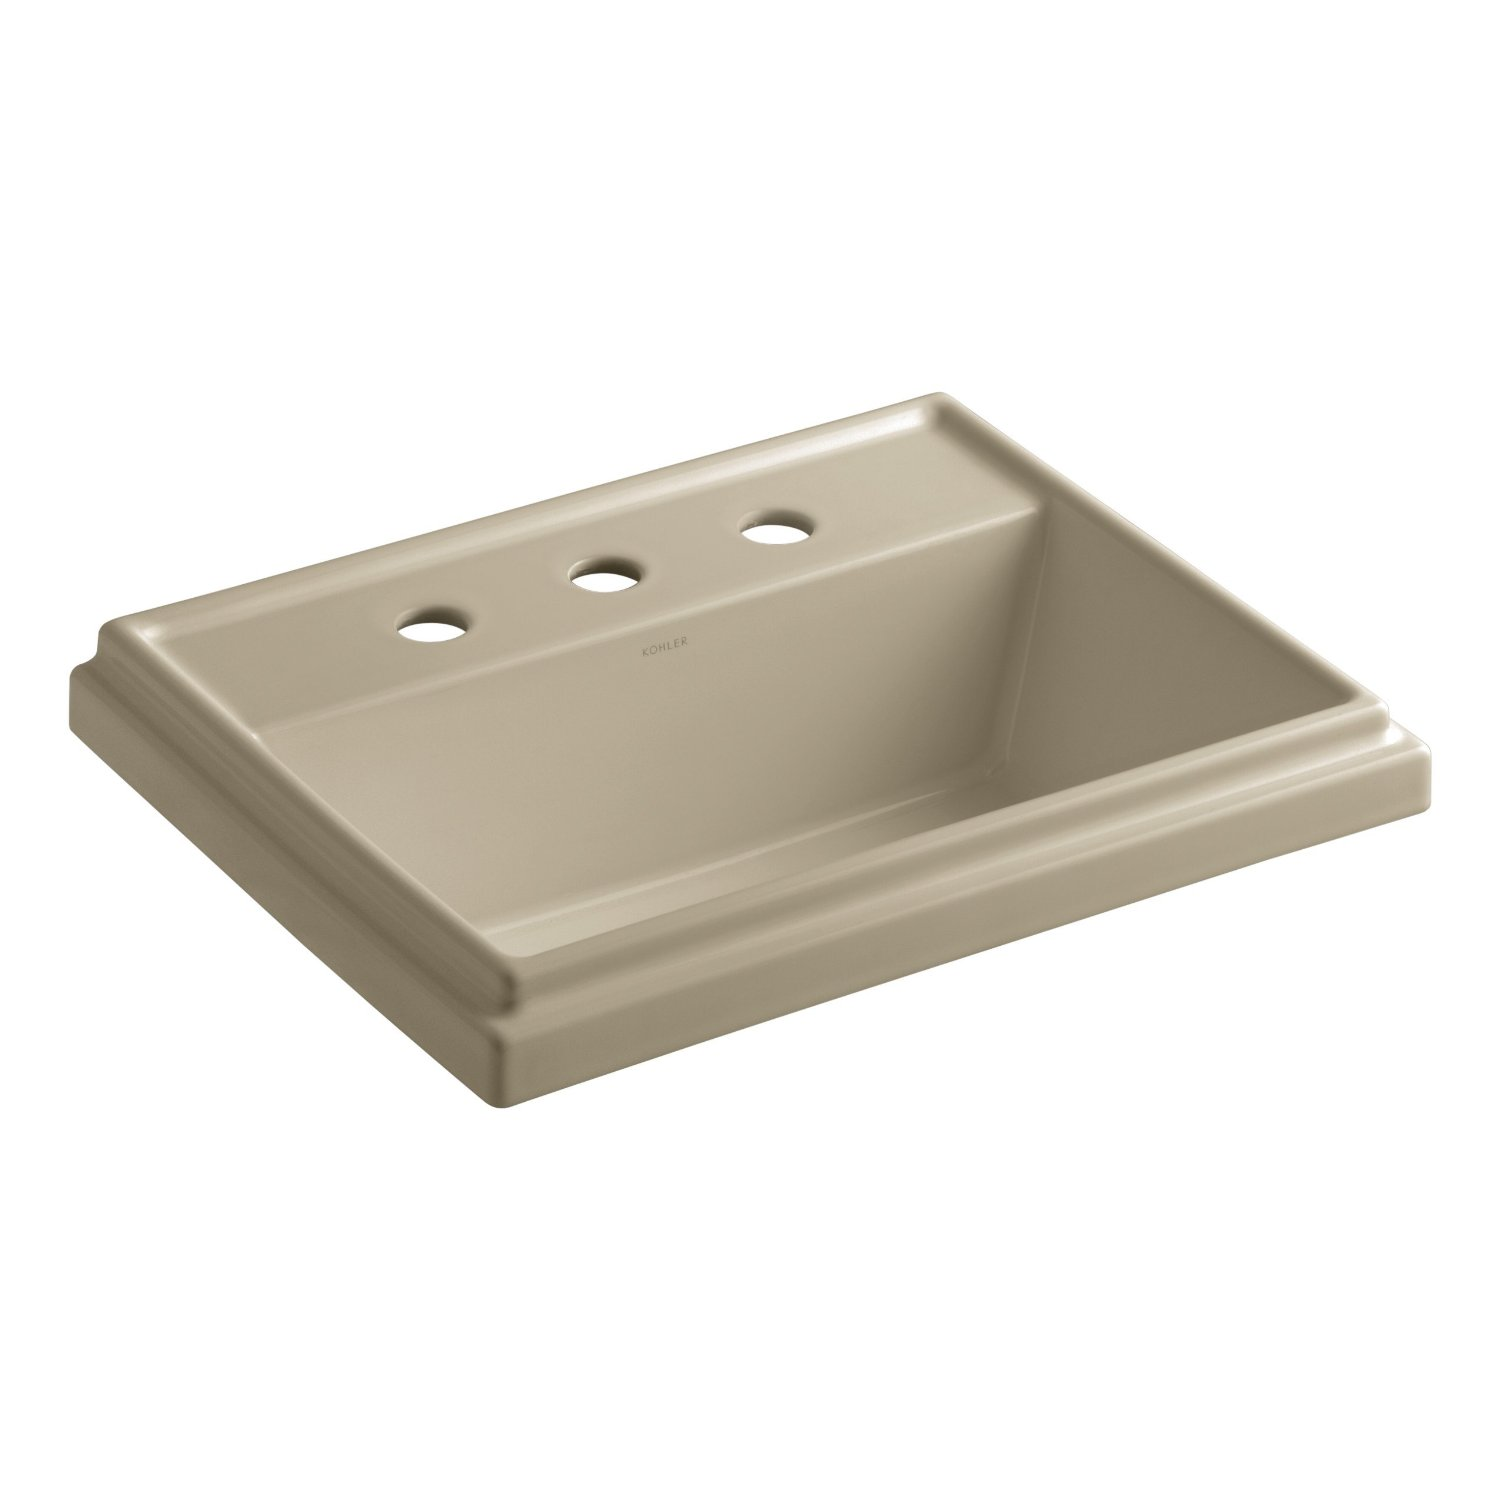 KOHLER K-2991-8-0 Tresham Rectangle Self-Rimming Bathroom Sink ...